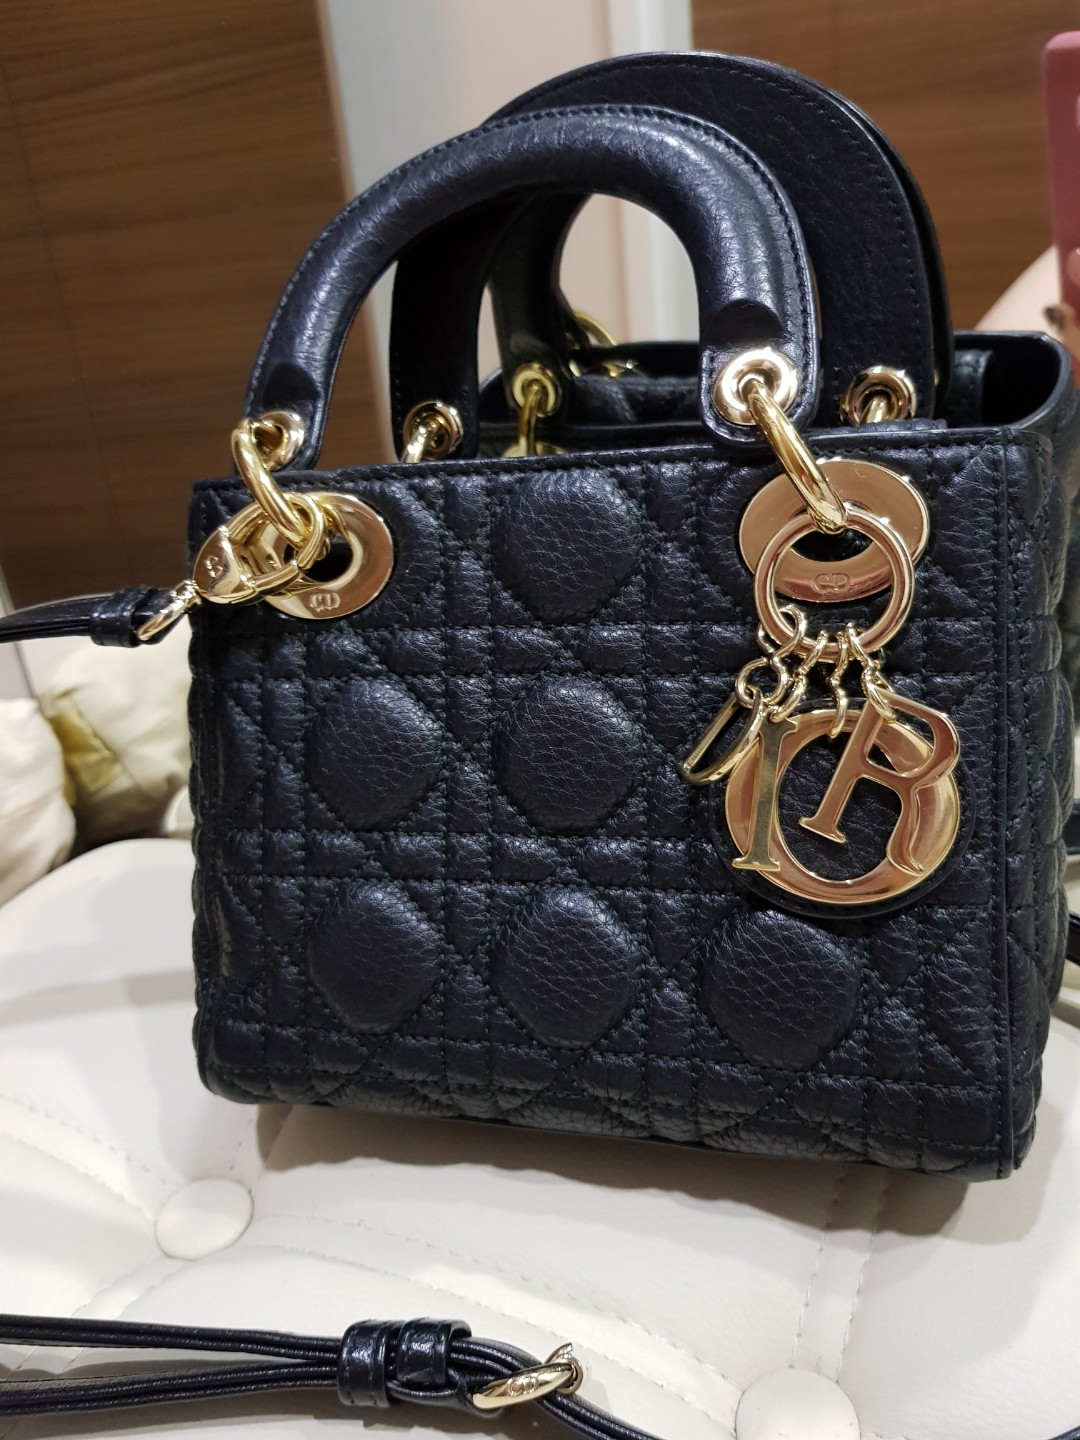 4e4c479a65 Mini Lady Dior Bag, Luxury, Bags & Wallets, Handbags on Carousell